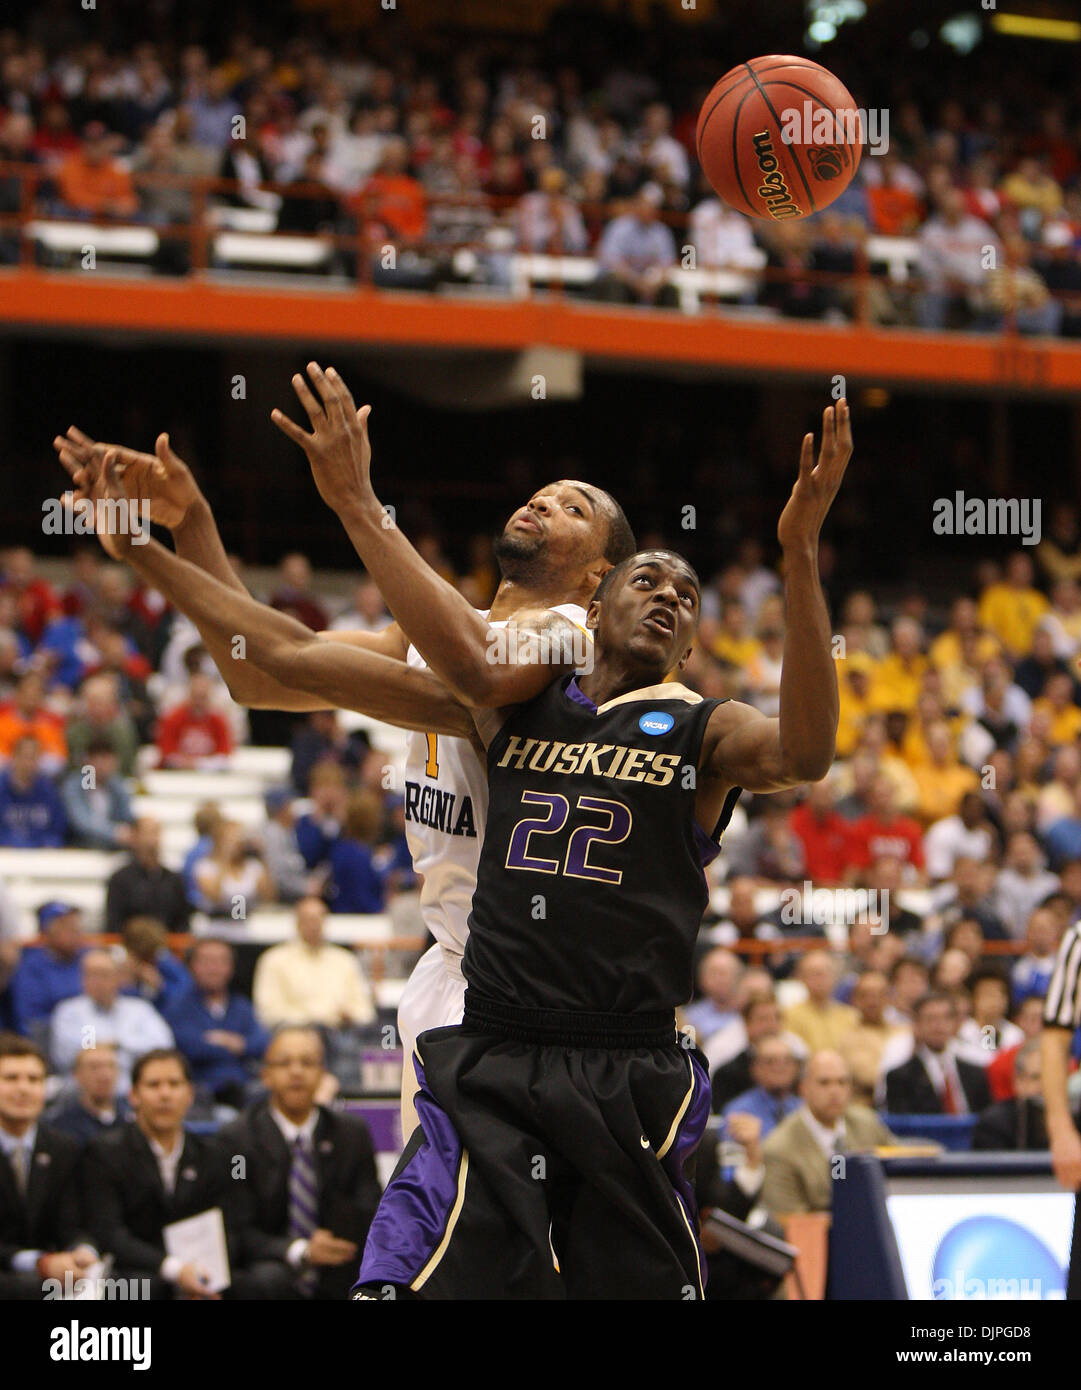 Mar. 25, 2010 - Syracuse, New York, U.S. - West Virginia's 1- DA'SEAN BUTLER and Washington's JUSTIN HOLIDAY battled for a rebound as West Virginia played Washington during the NCAA tournament, March Madness at the Carrier Dome. Washington played West Virginia during the Sweet 16 bracket game.  (Credit Image: © Charles Bertram/Lexington Herald-Leader/ZUMApress.com) - Stock Image